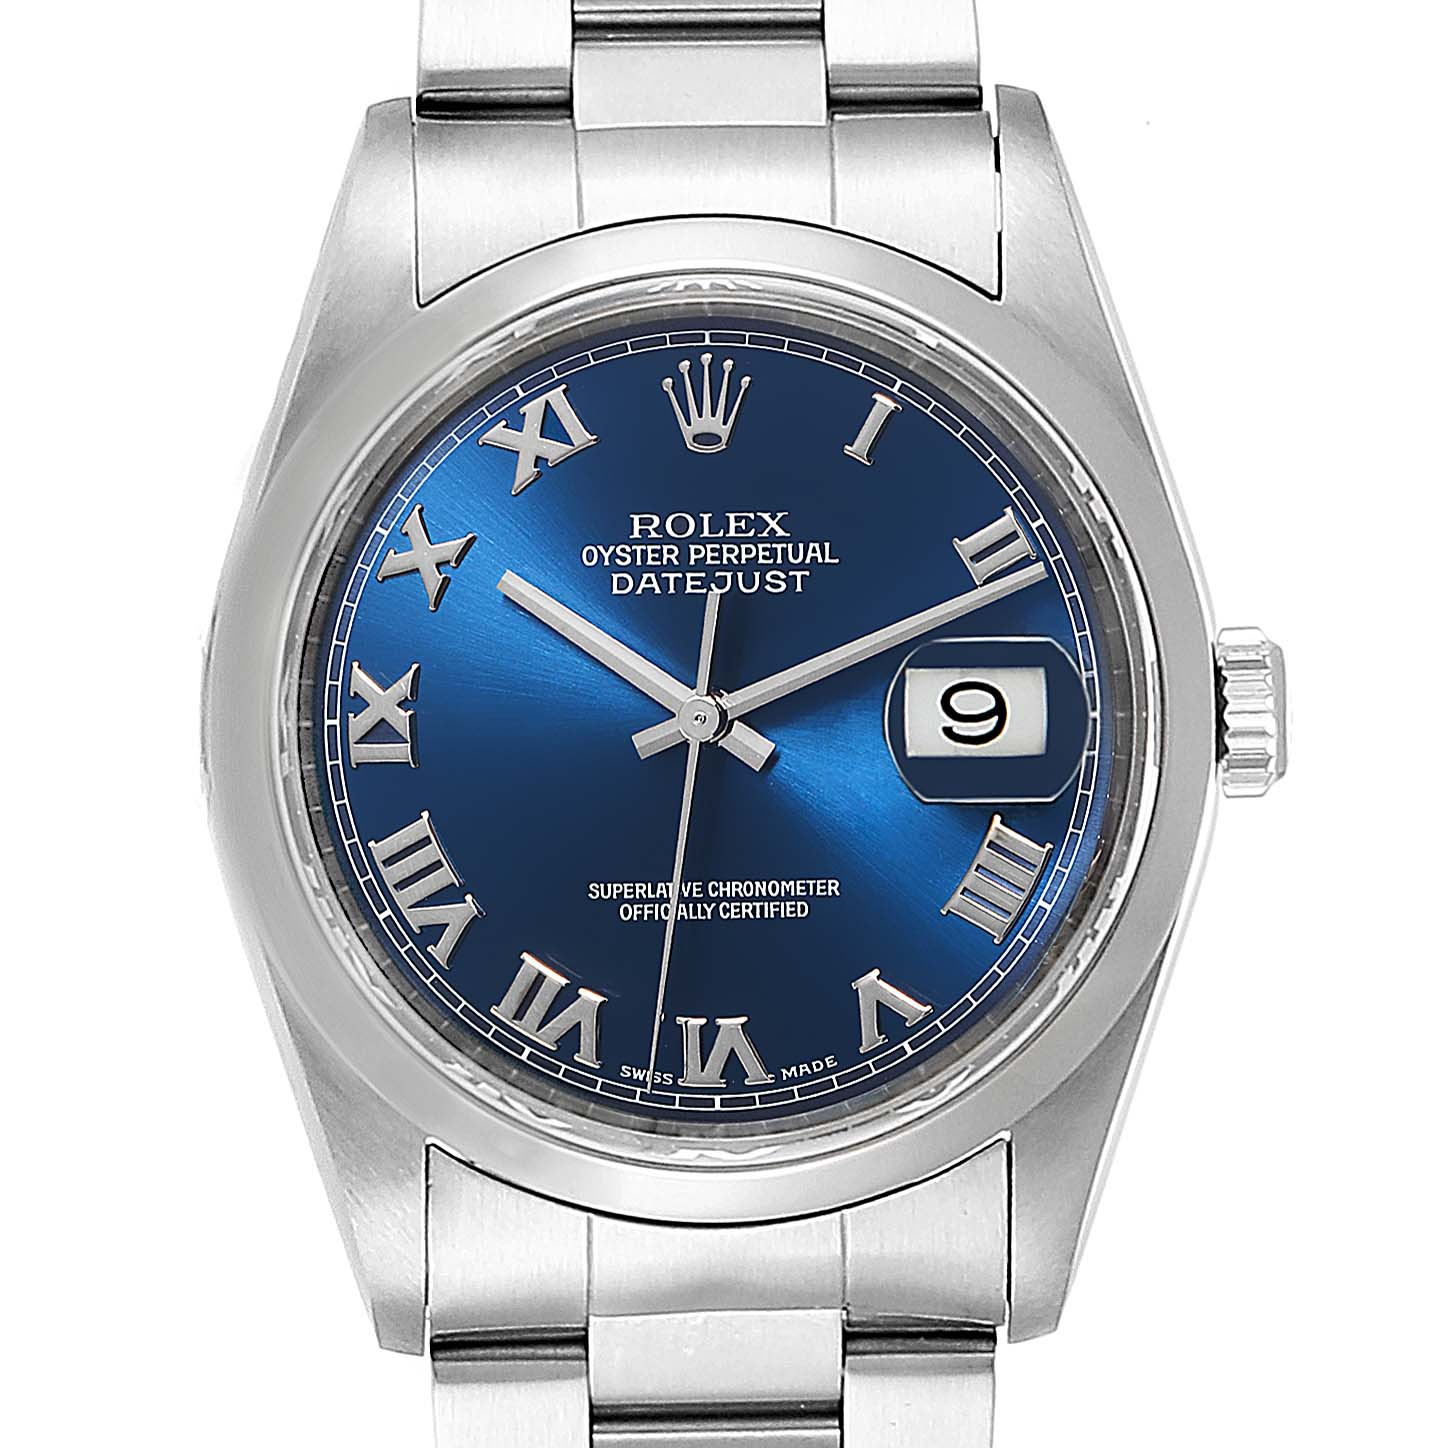 Rolex Datejust 36 Blue Dial Oyster Bracelet Steel Mens Watch 16200